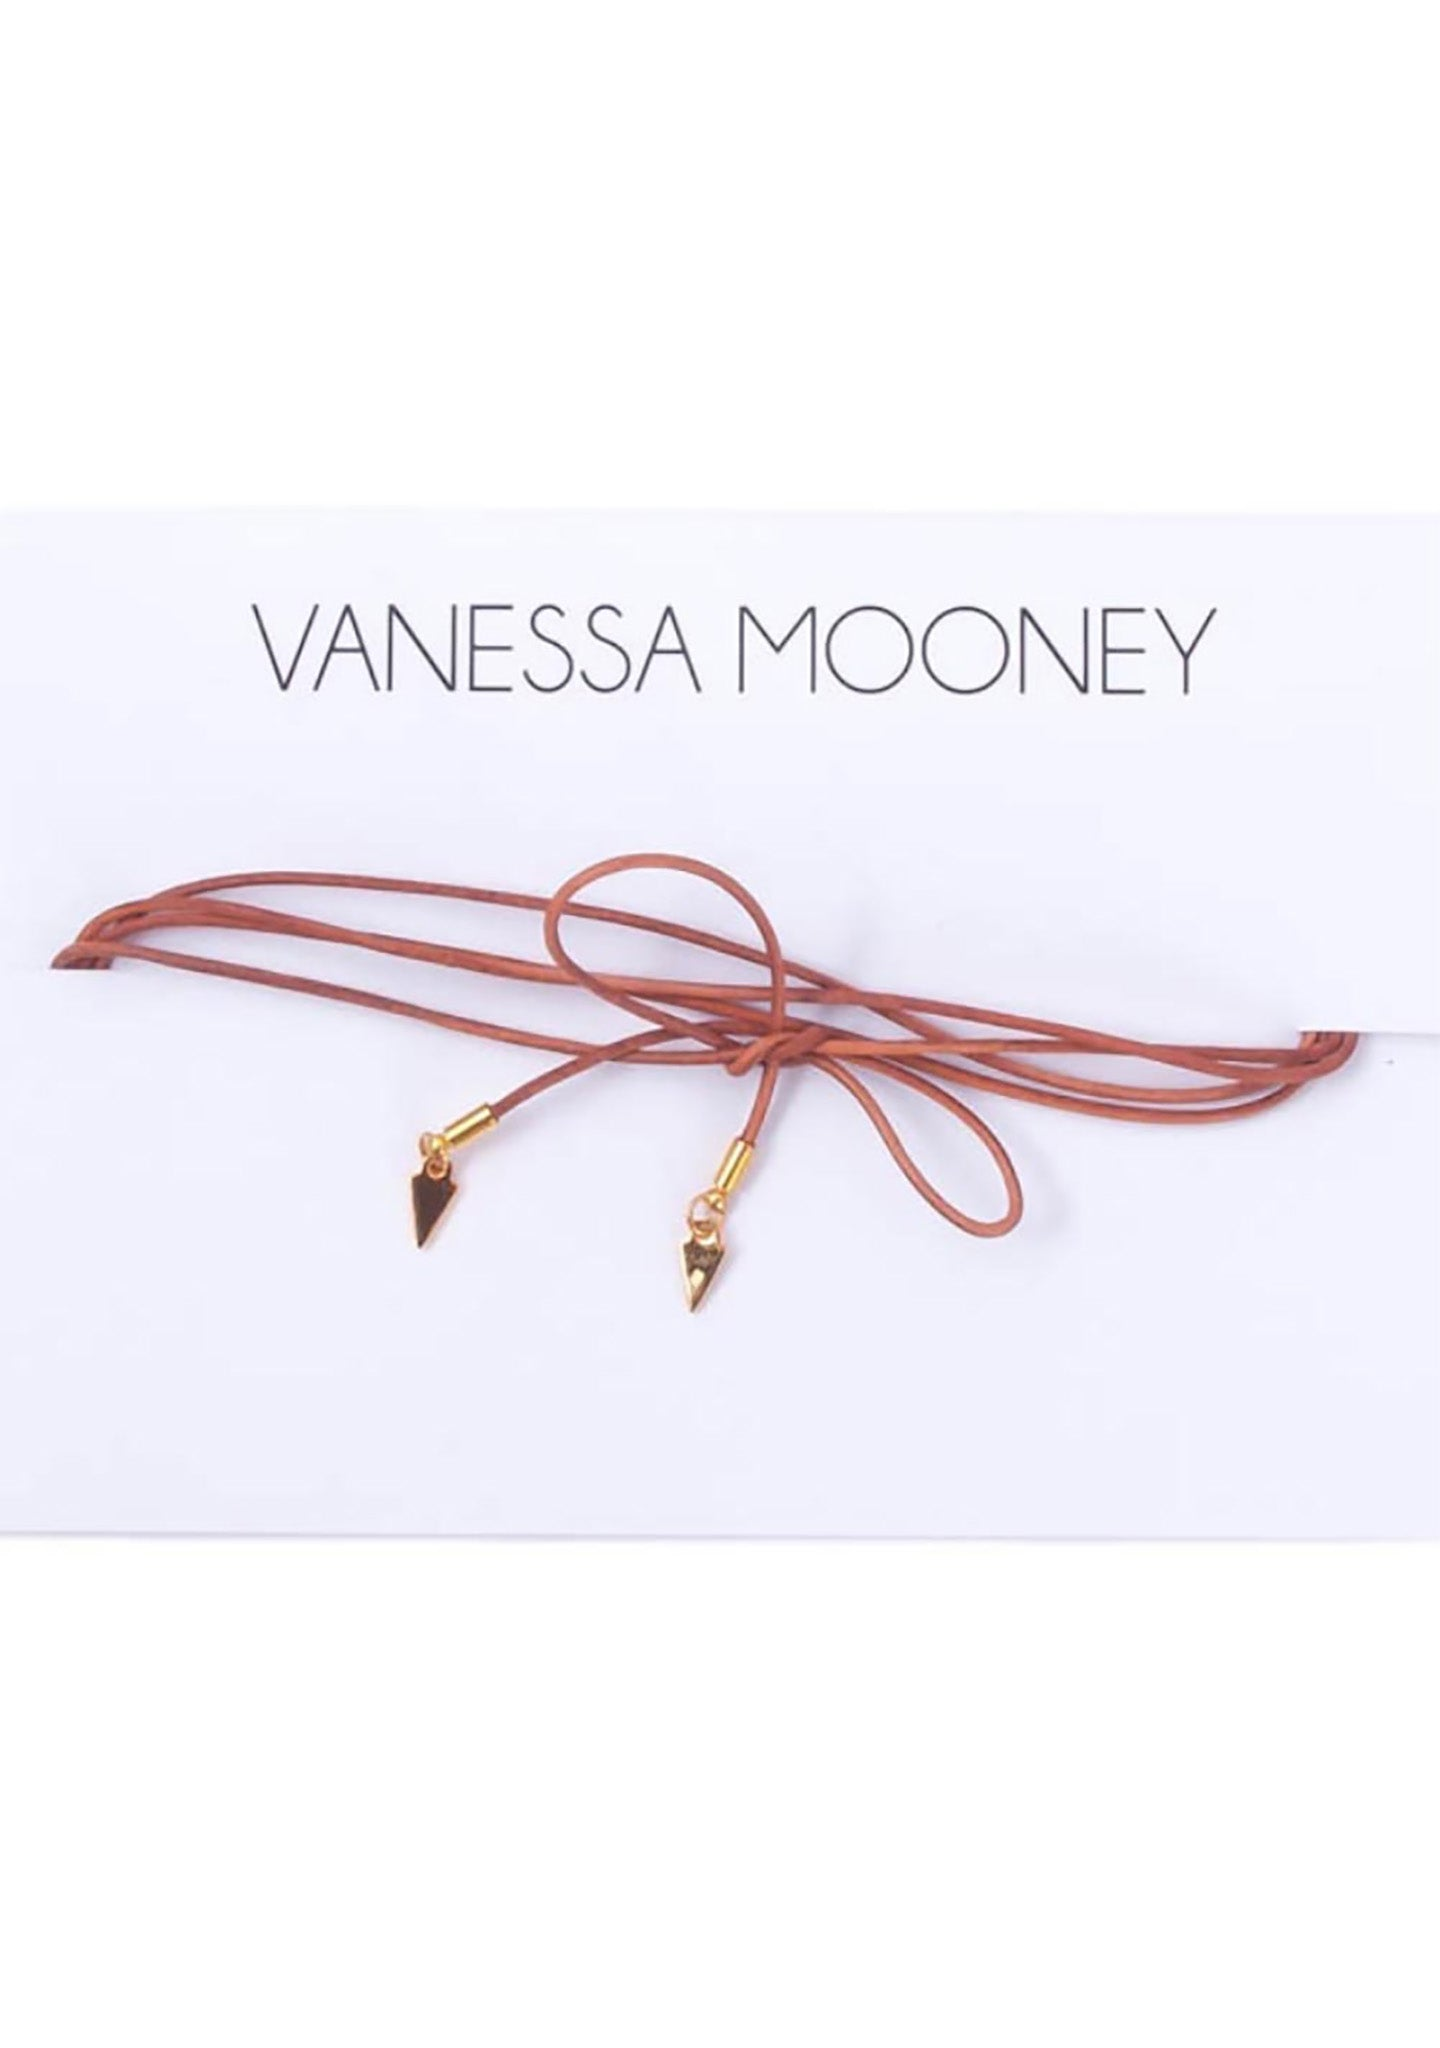 Vanessa Mooney The Vista Bolo Wrap in Tan